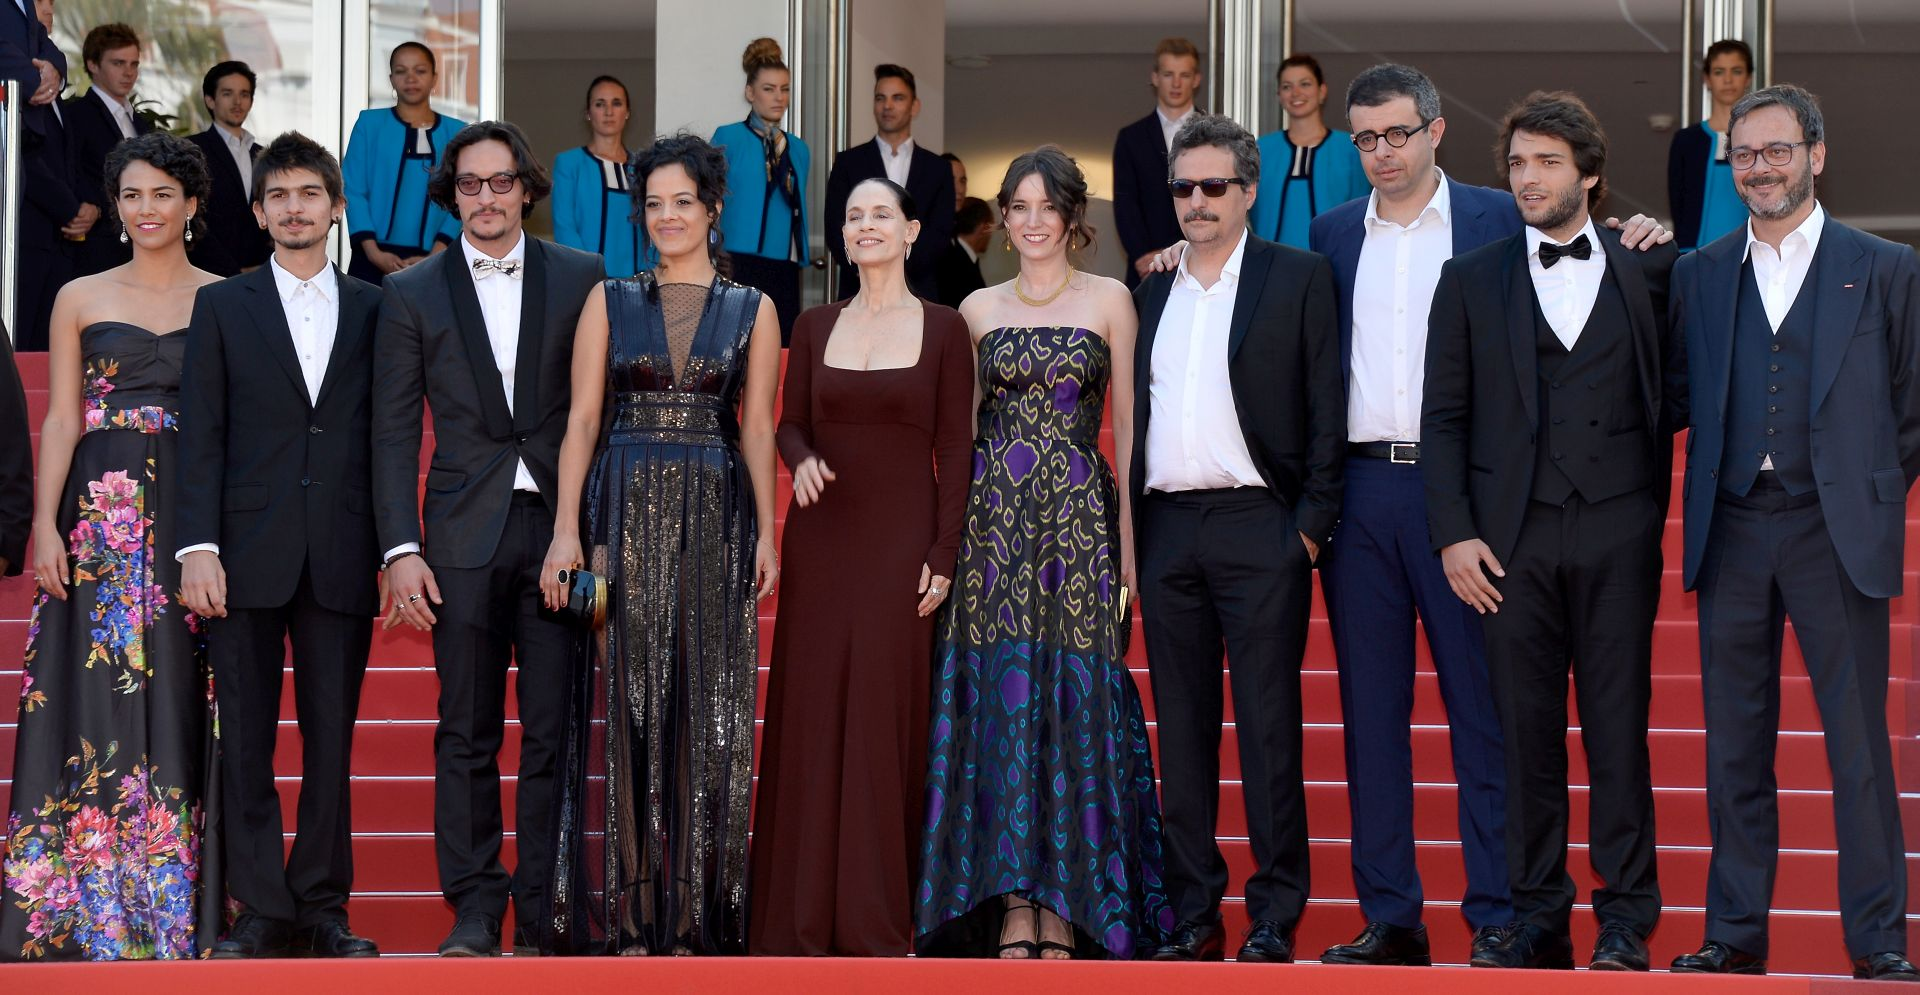 Barbara Colen, Maeve Jinkings, Sonia Braga,  Emilie Lesclaux, Kleber Mendonca Filho, Saïd Ben Saïd, Humberto Carrao i Michel Merkt (Photo by Pascal Le Segretain/Getty Images)